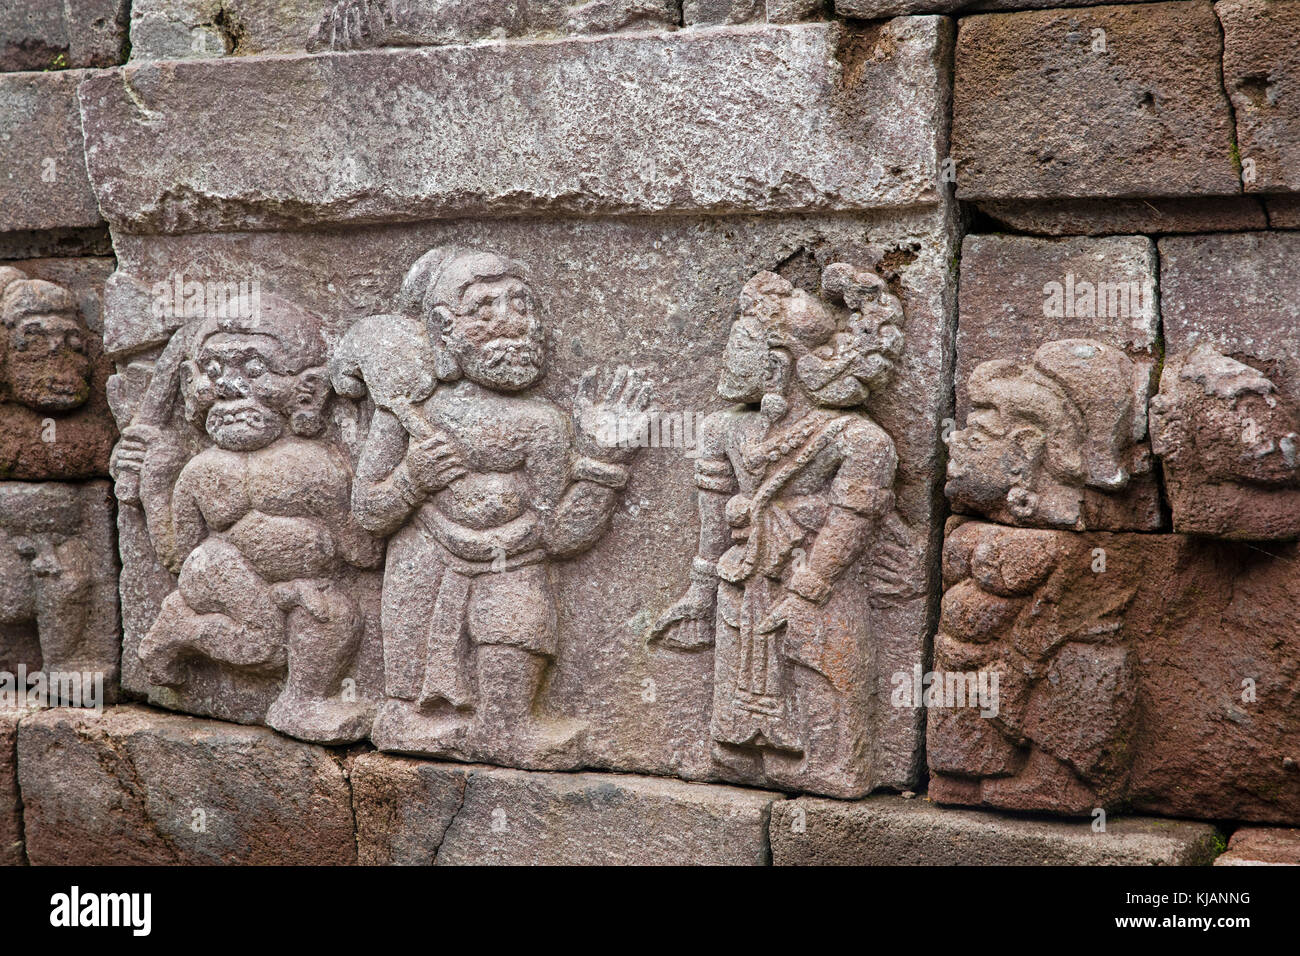 Relief On Stone Wall At Candi Sukuh 15th Century Javanese Hindu